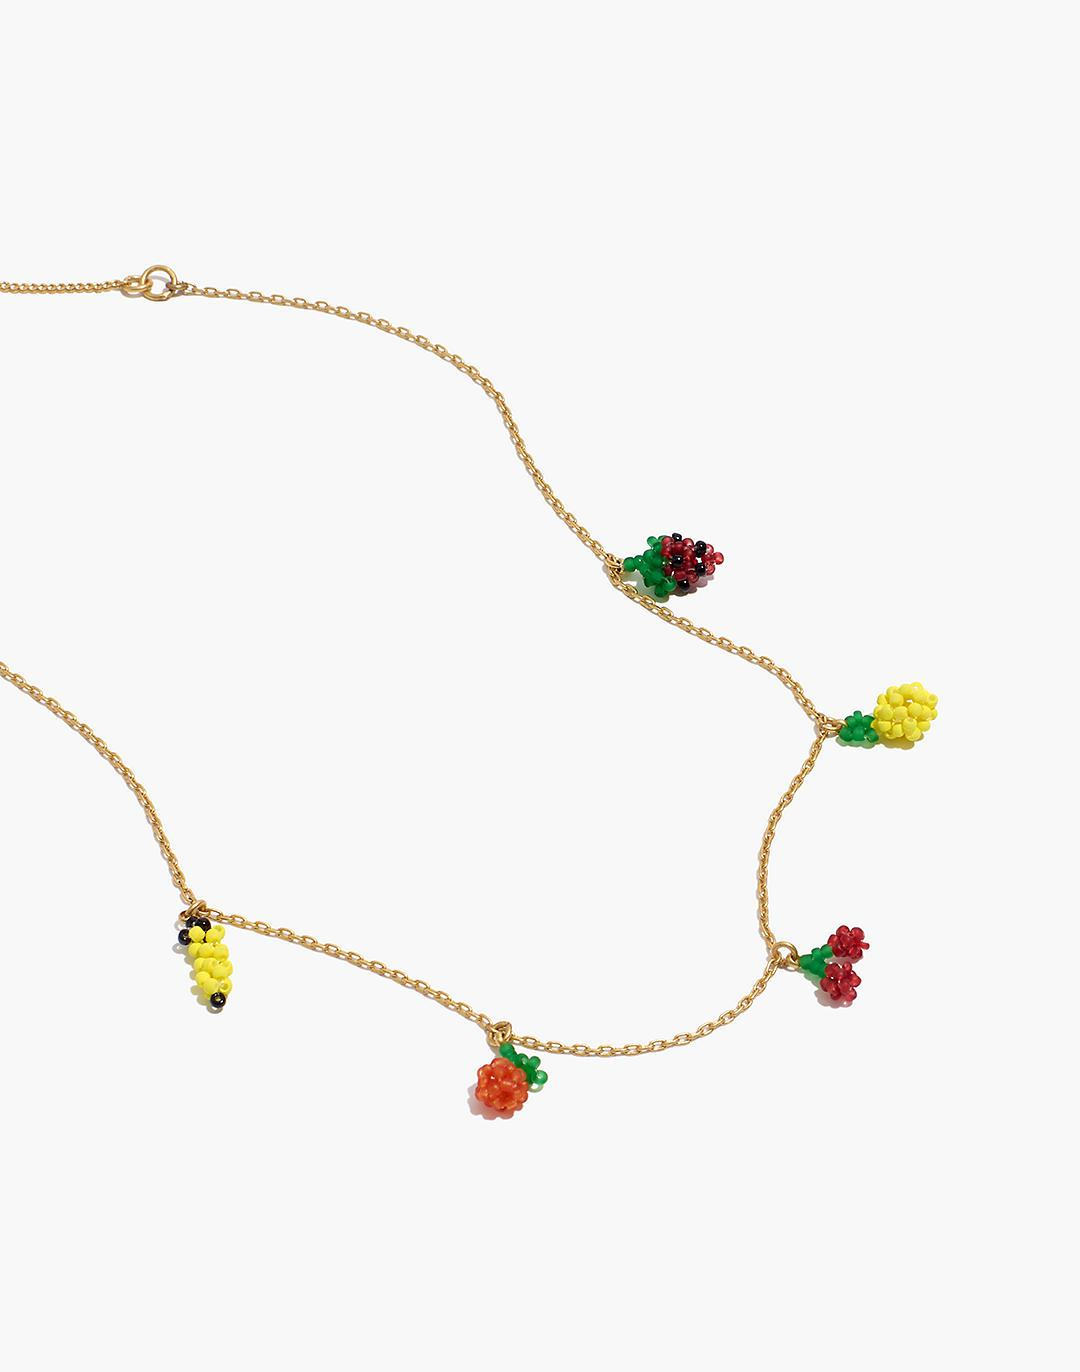 Beaded Fruit Chain Necklace